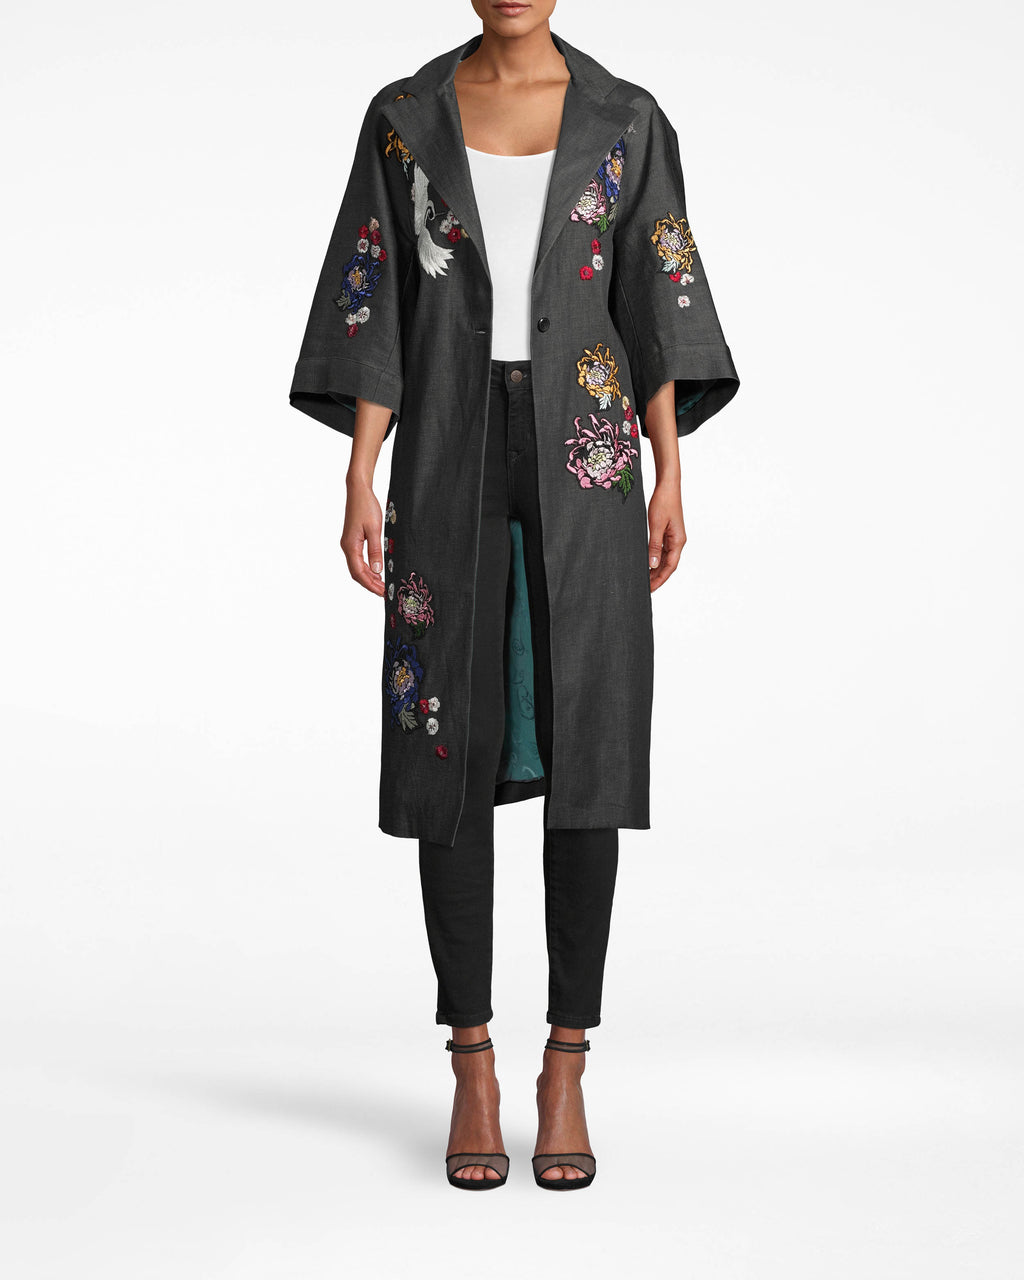 CO10136 - CRANE AND CHERRY BLOSSOM DENIM COAT - outerwear - coats - A NEW TAKE ON A CLOSET ESSENTIAL, THIS DENIM JACKET HITS JUST BELOW THE KNEE AND IS EMBROIDEREDWITH CRANE AND CHERRY BLOSSOM IMAGERY. SHORT, FLARED SLEEVES MAKE THIS JACKET PERFECT FOR LAYERING.